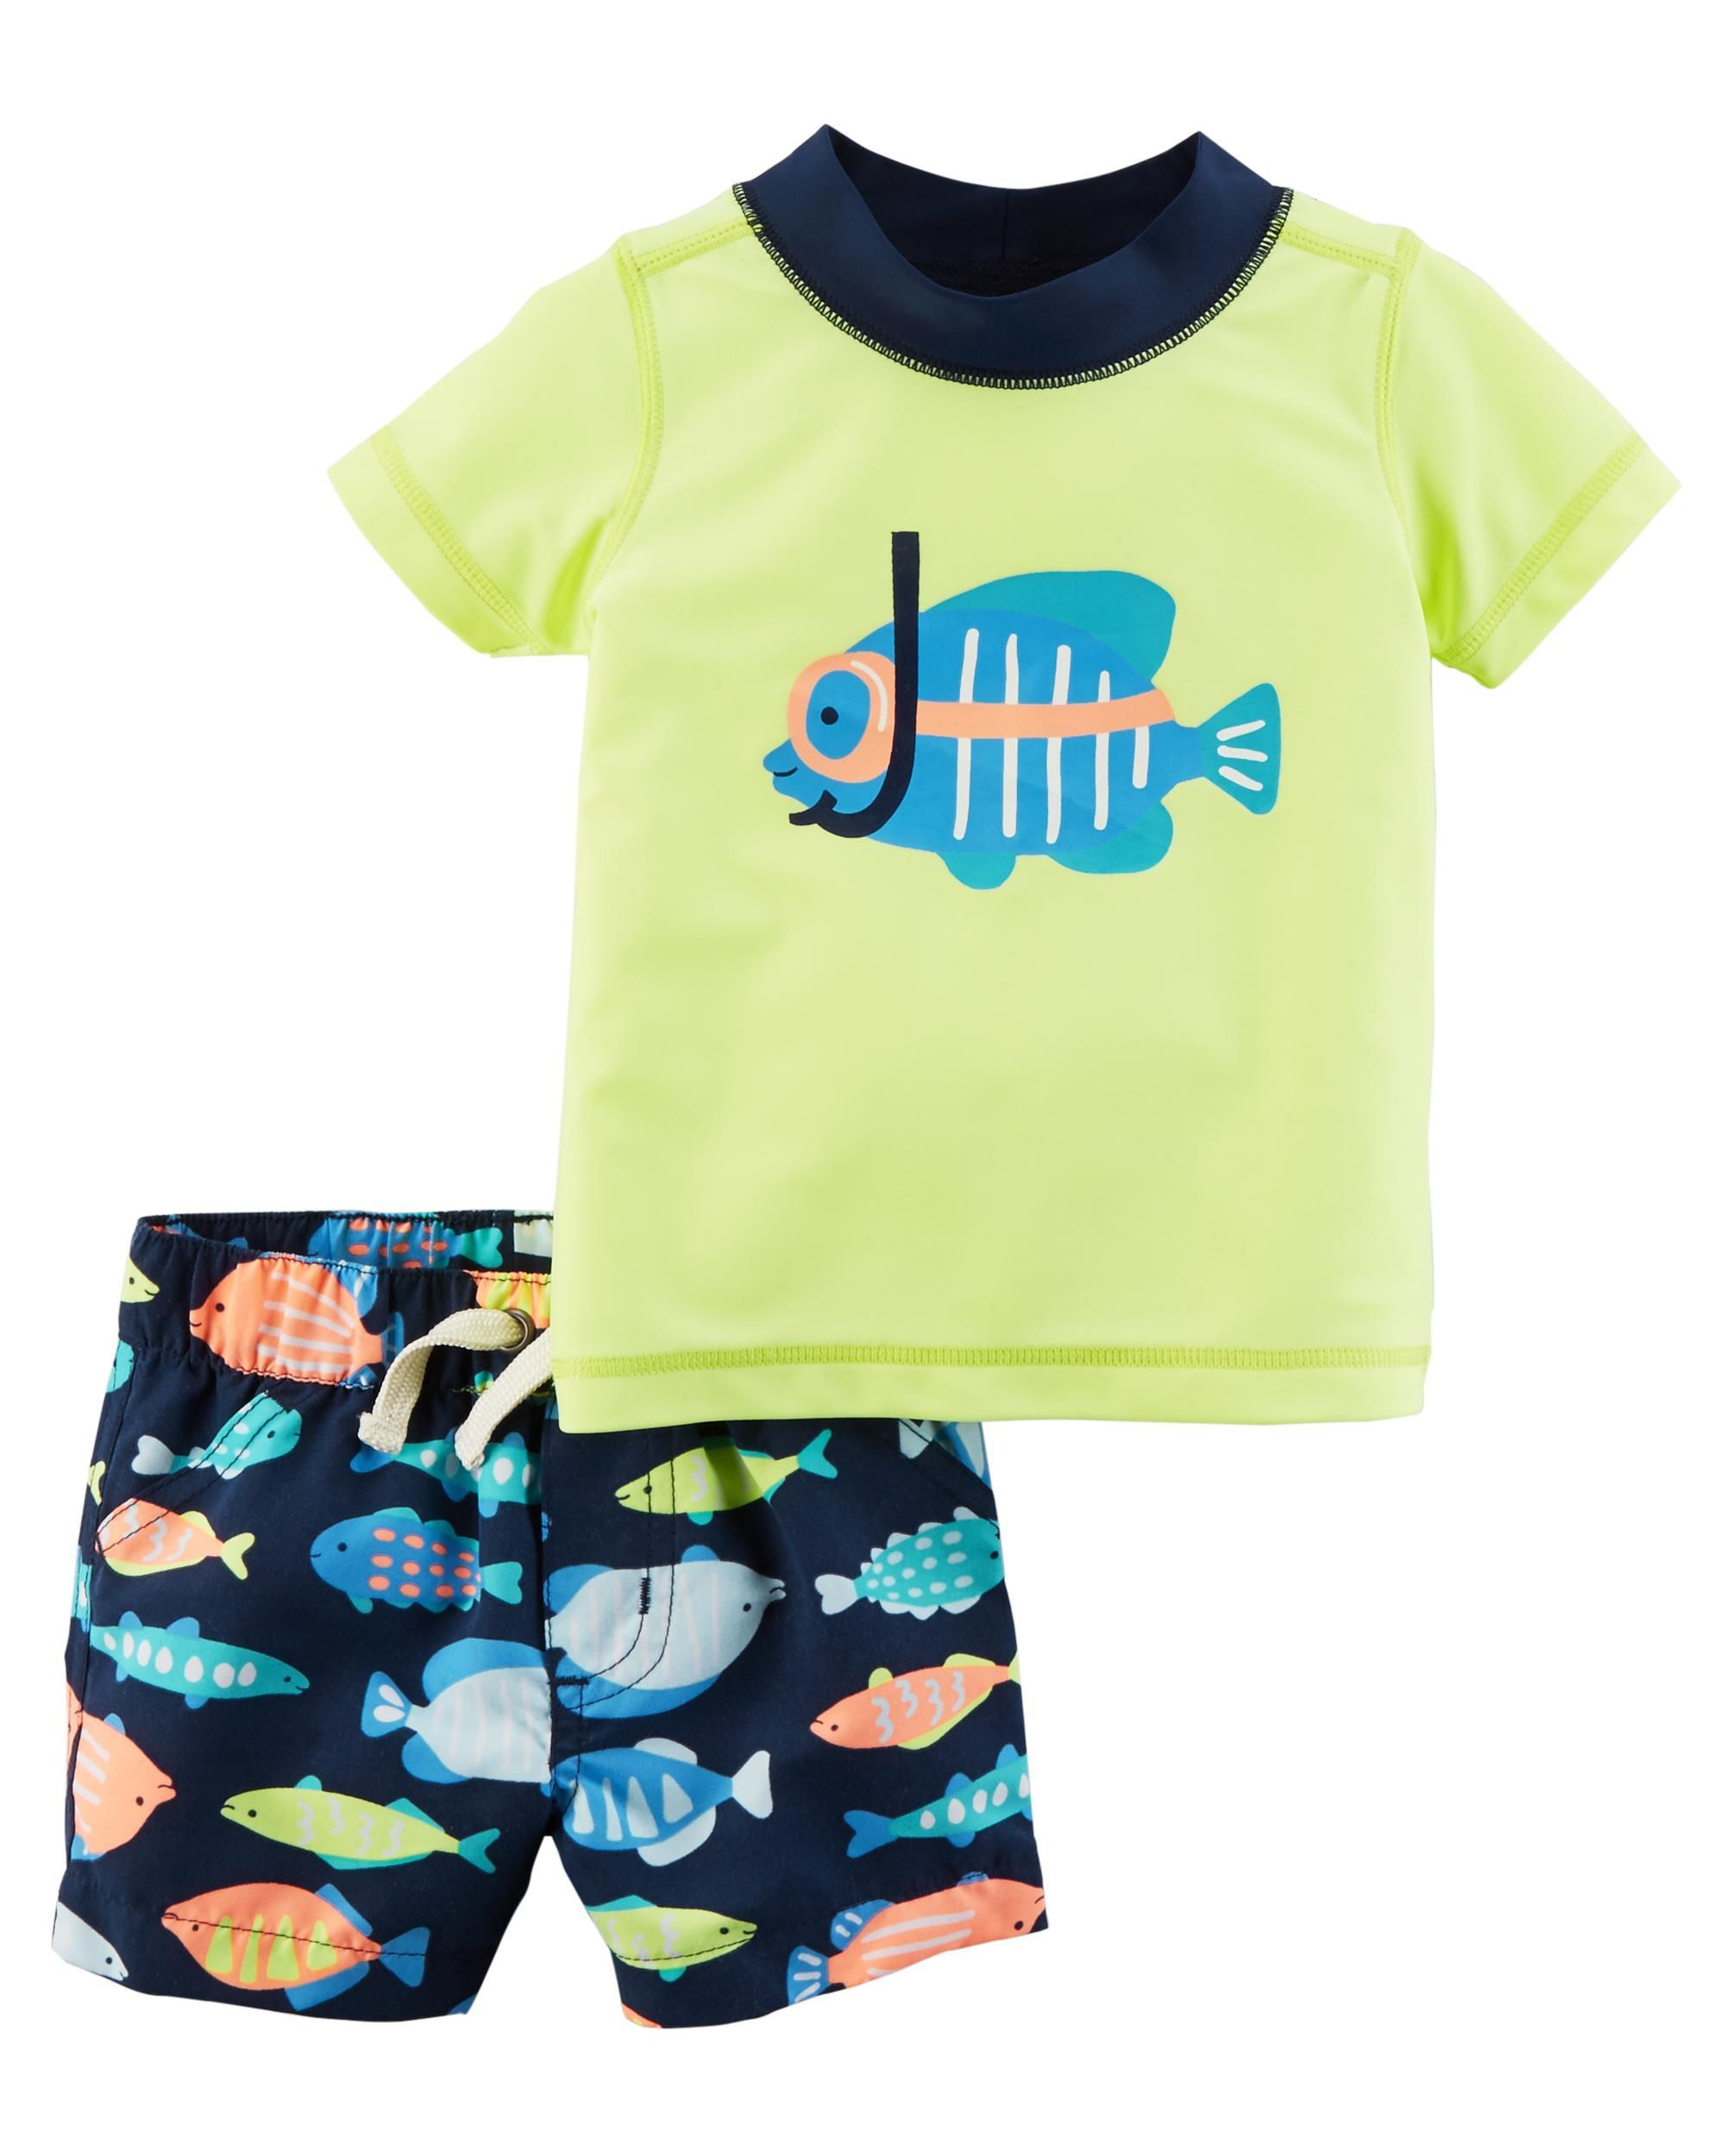 ea33f49493 With UPF 50+ sun protection and cute fish prints, this 2-piece rashguard  set will keep him cute and protected all day long.